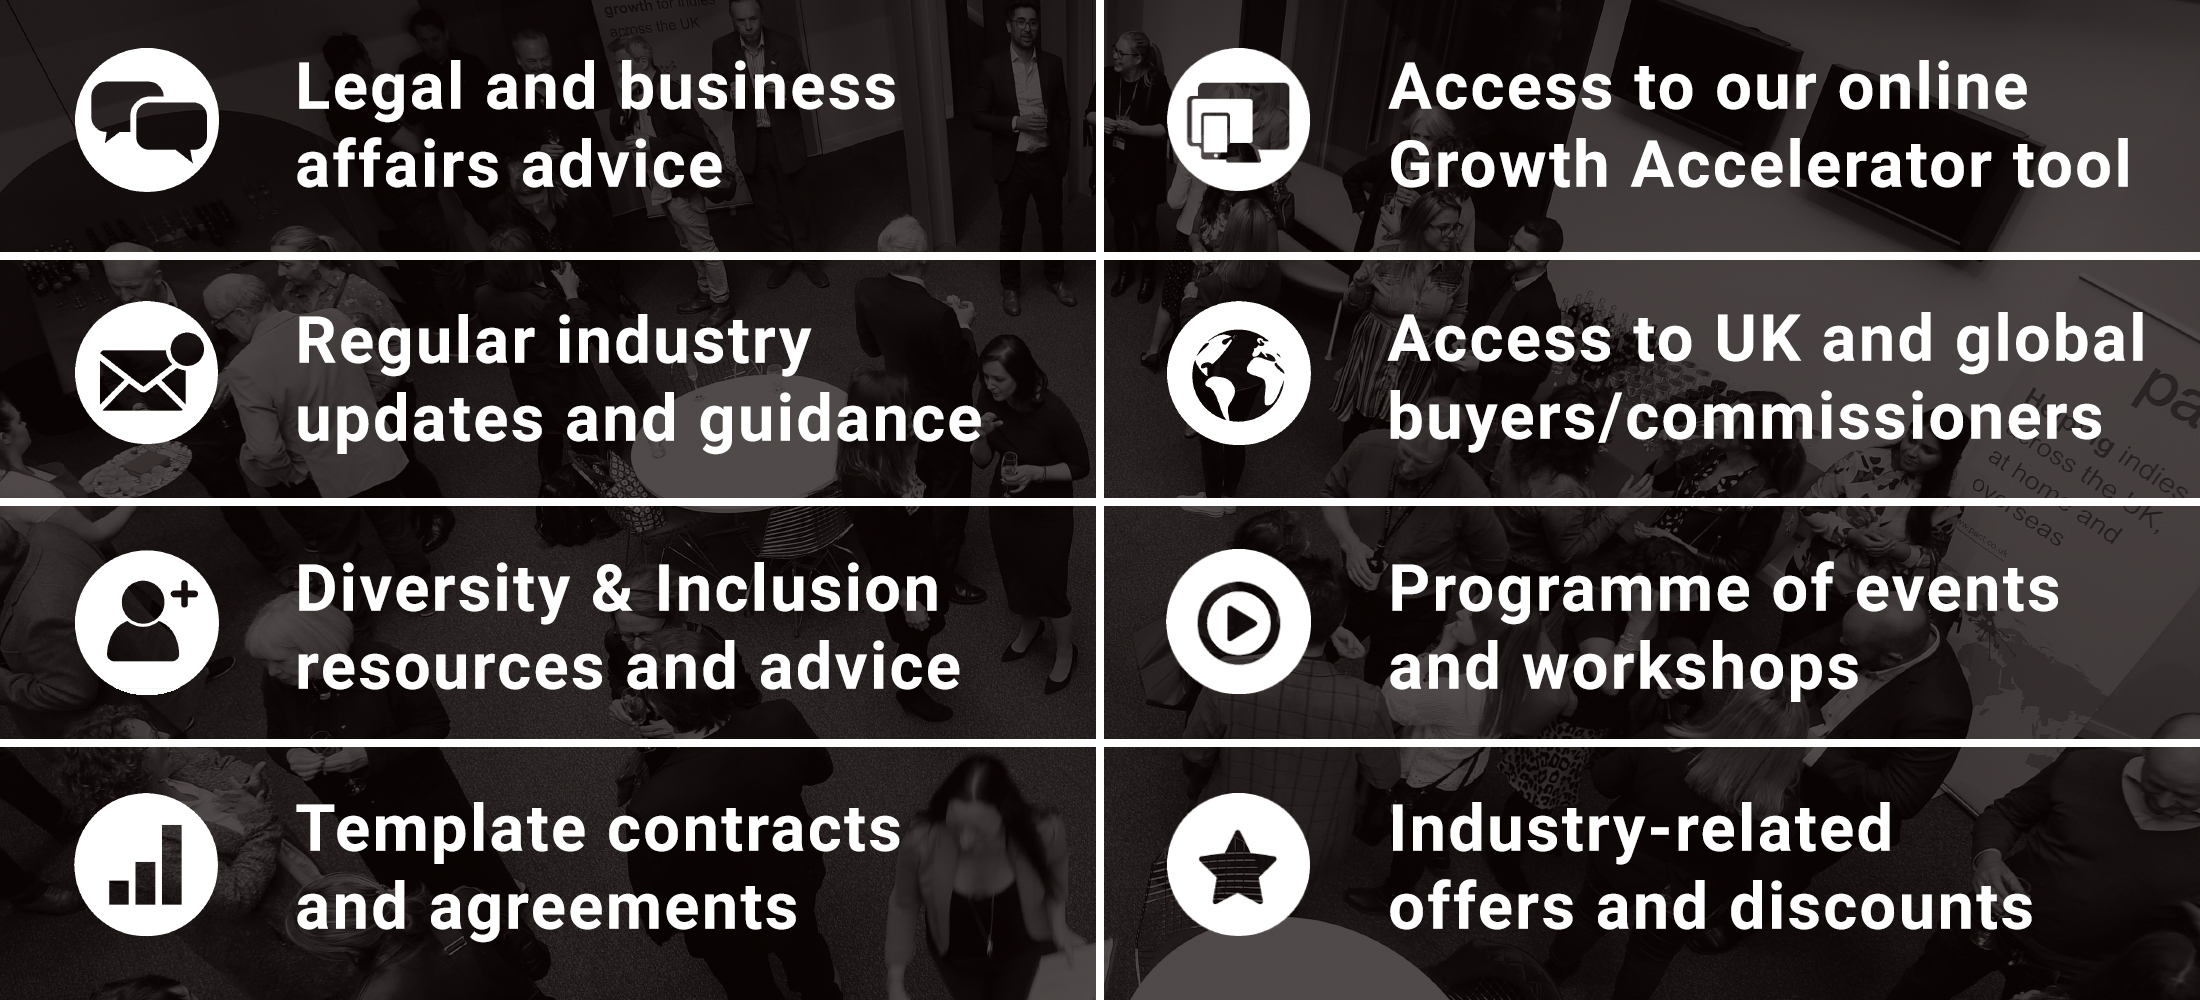 Legal and Business Affairs advice, access to our online Growth Accelerator tool, regular industry updates and guidance, Access to UK and global buyers and commissioners,  and more